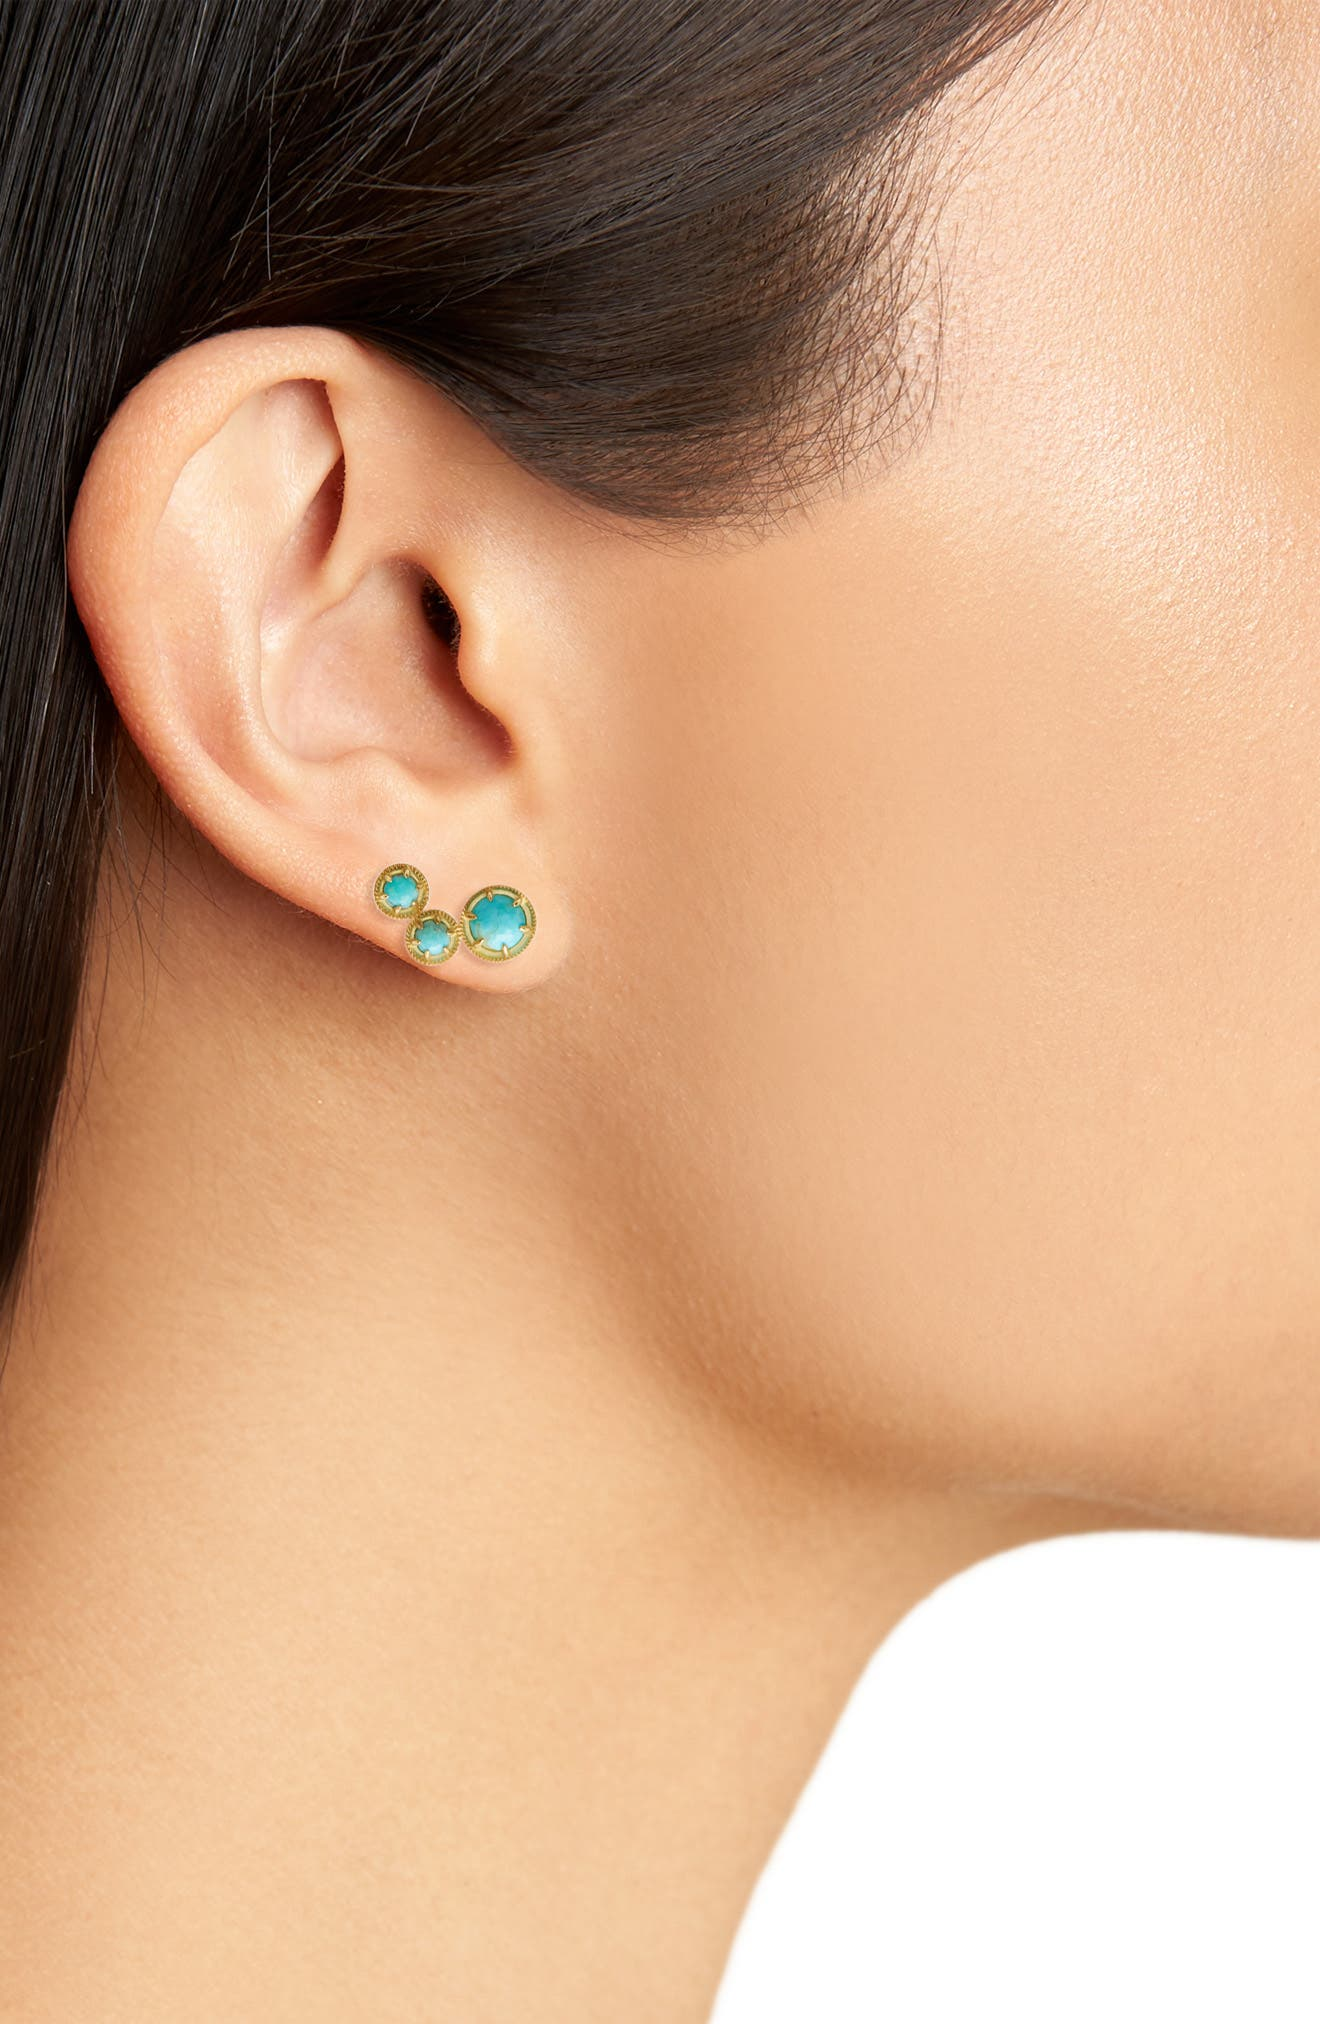 Cleo Doublet Ear Crawlers,                             Alternate thumbnail 2, color,                             TURQUOISE/ GOLD